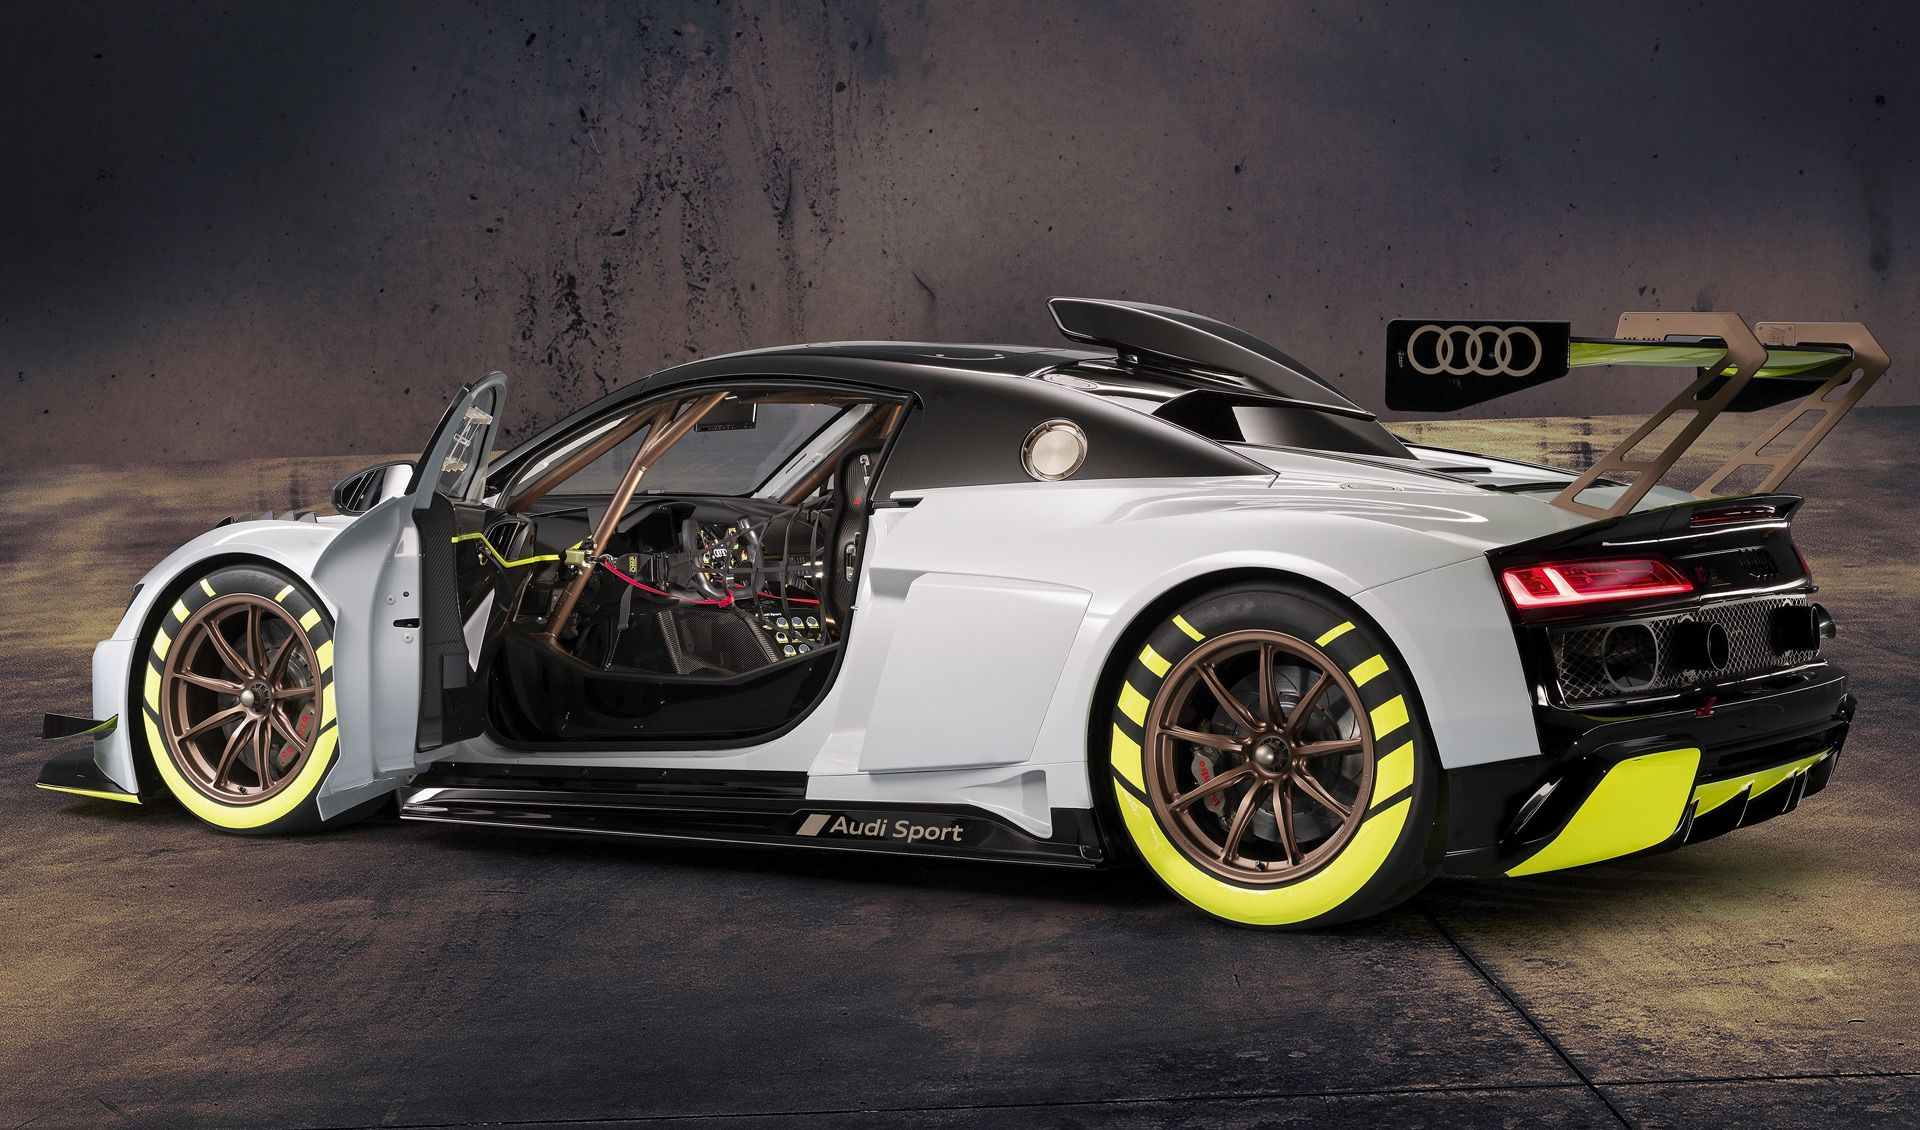 Audi First To Reveal New Race Car For Revived Gt2 Series In 2020 Audi Race Cars Audi R8